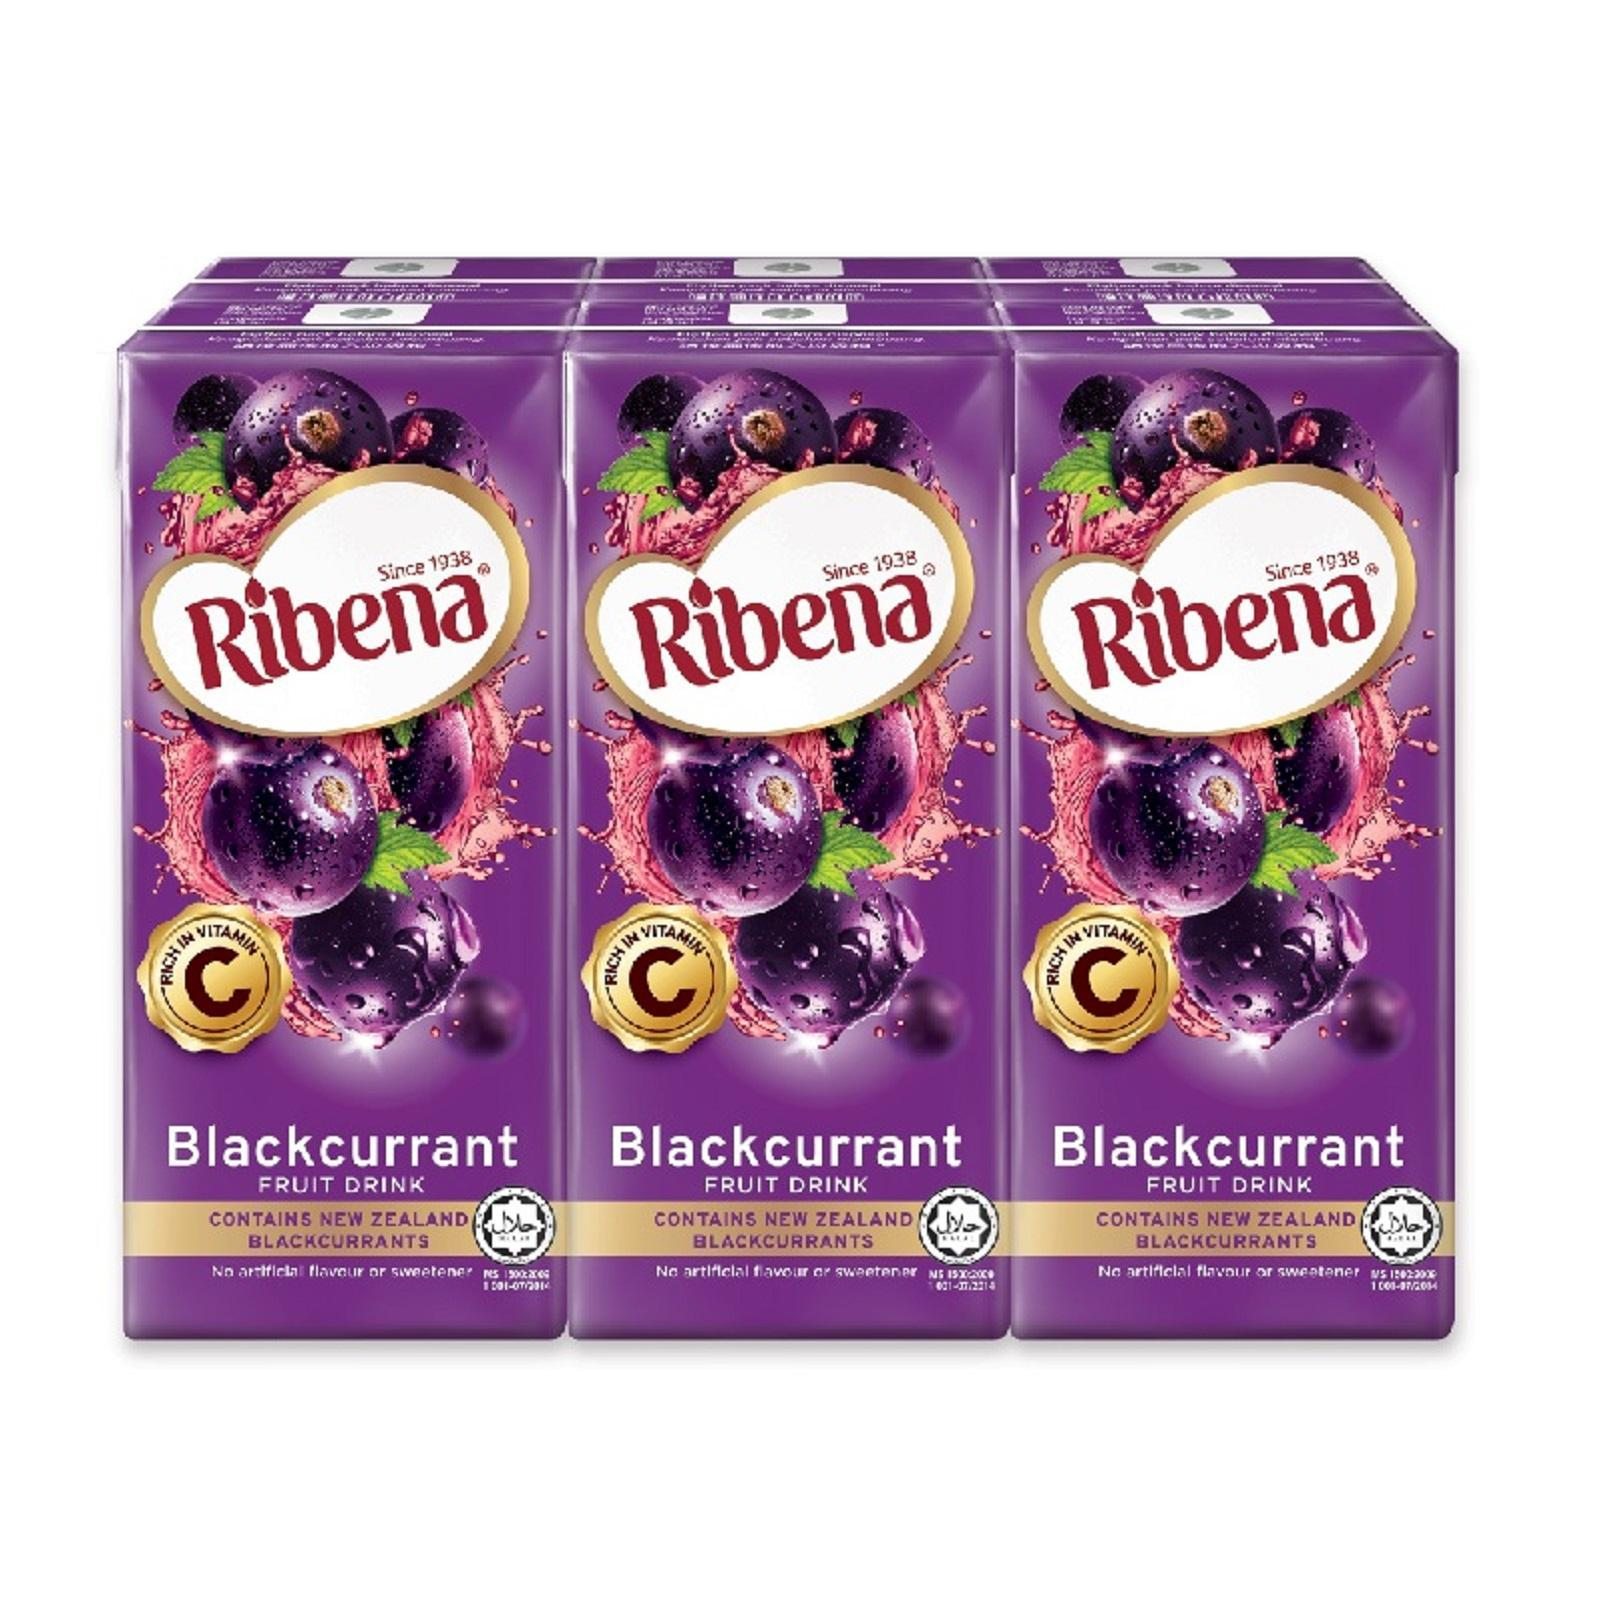 Ribena Blackcurrant And Strawberry Fruit Drink